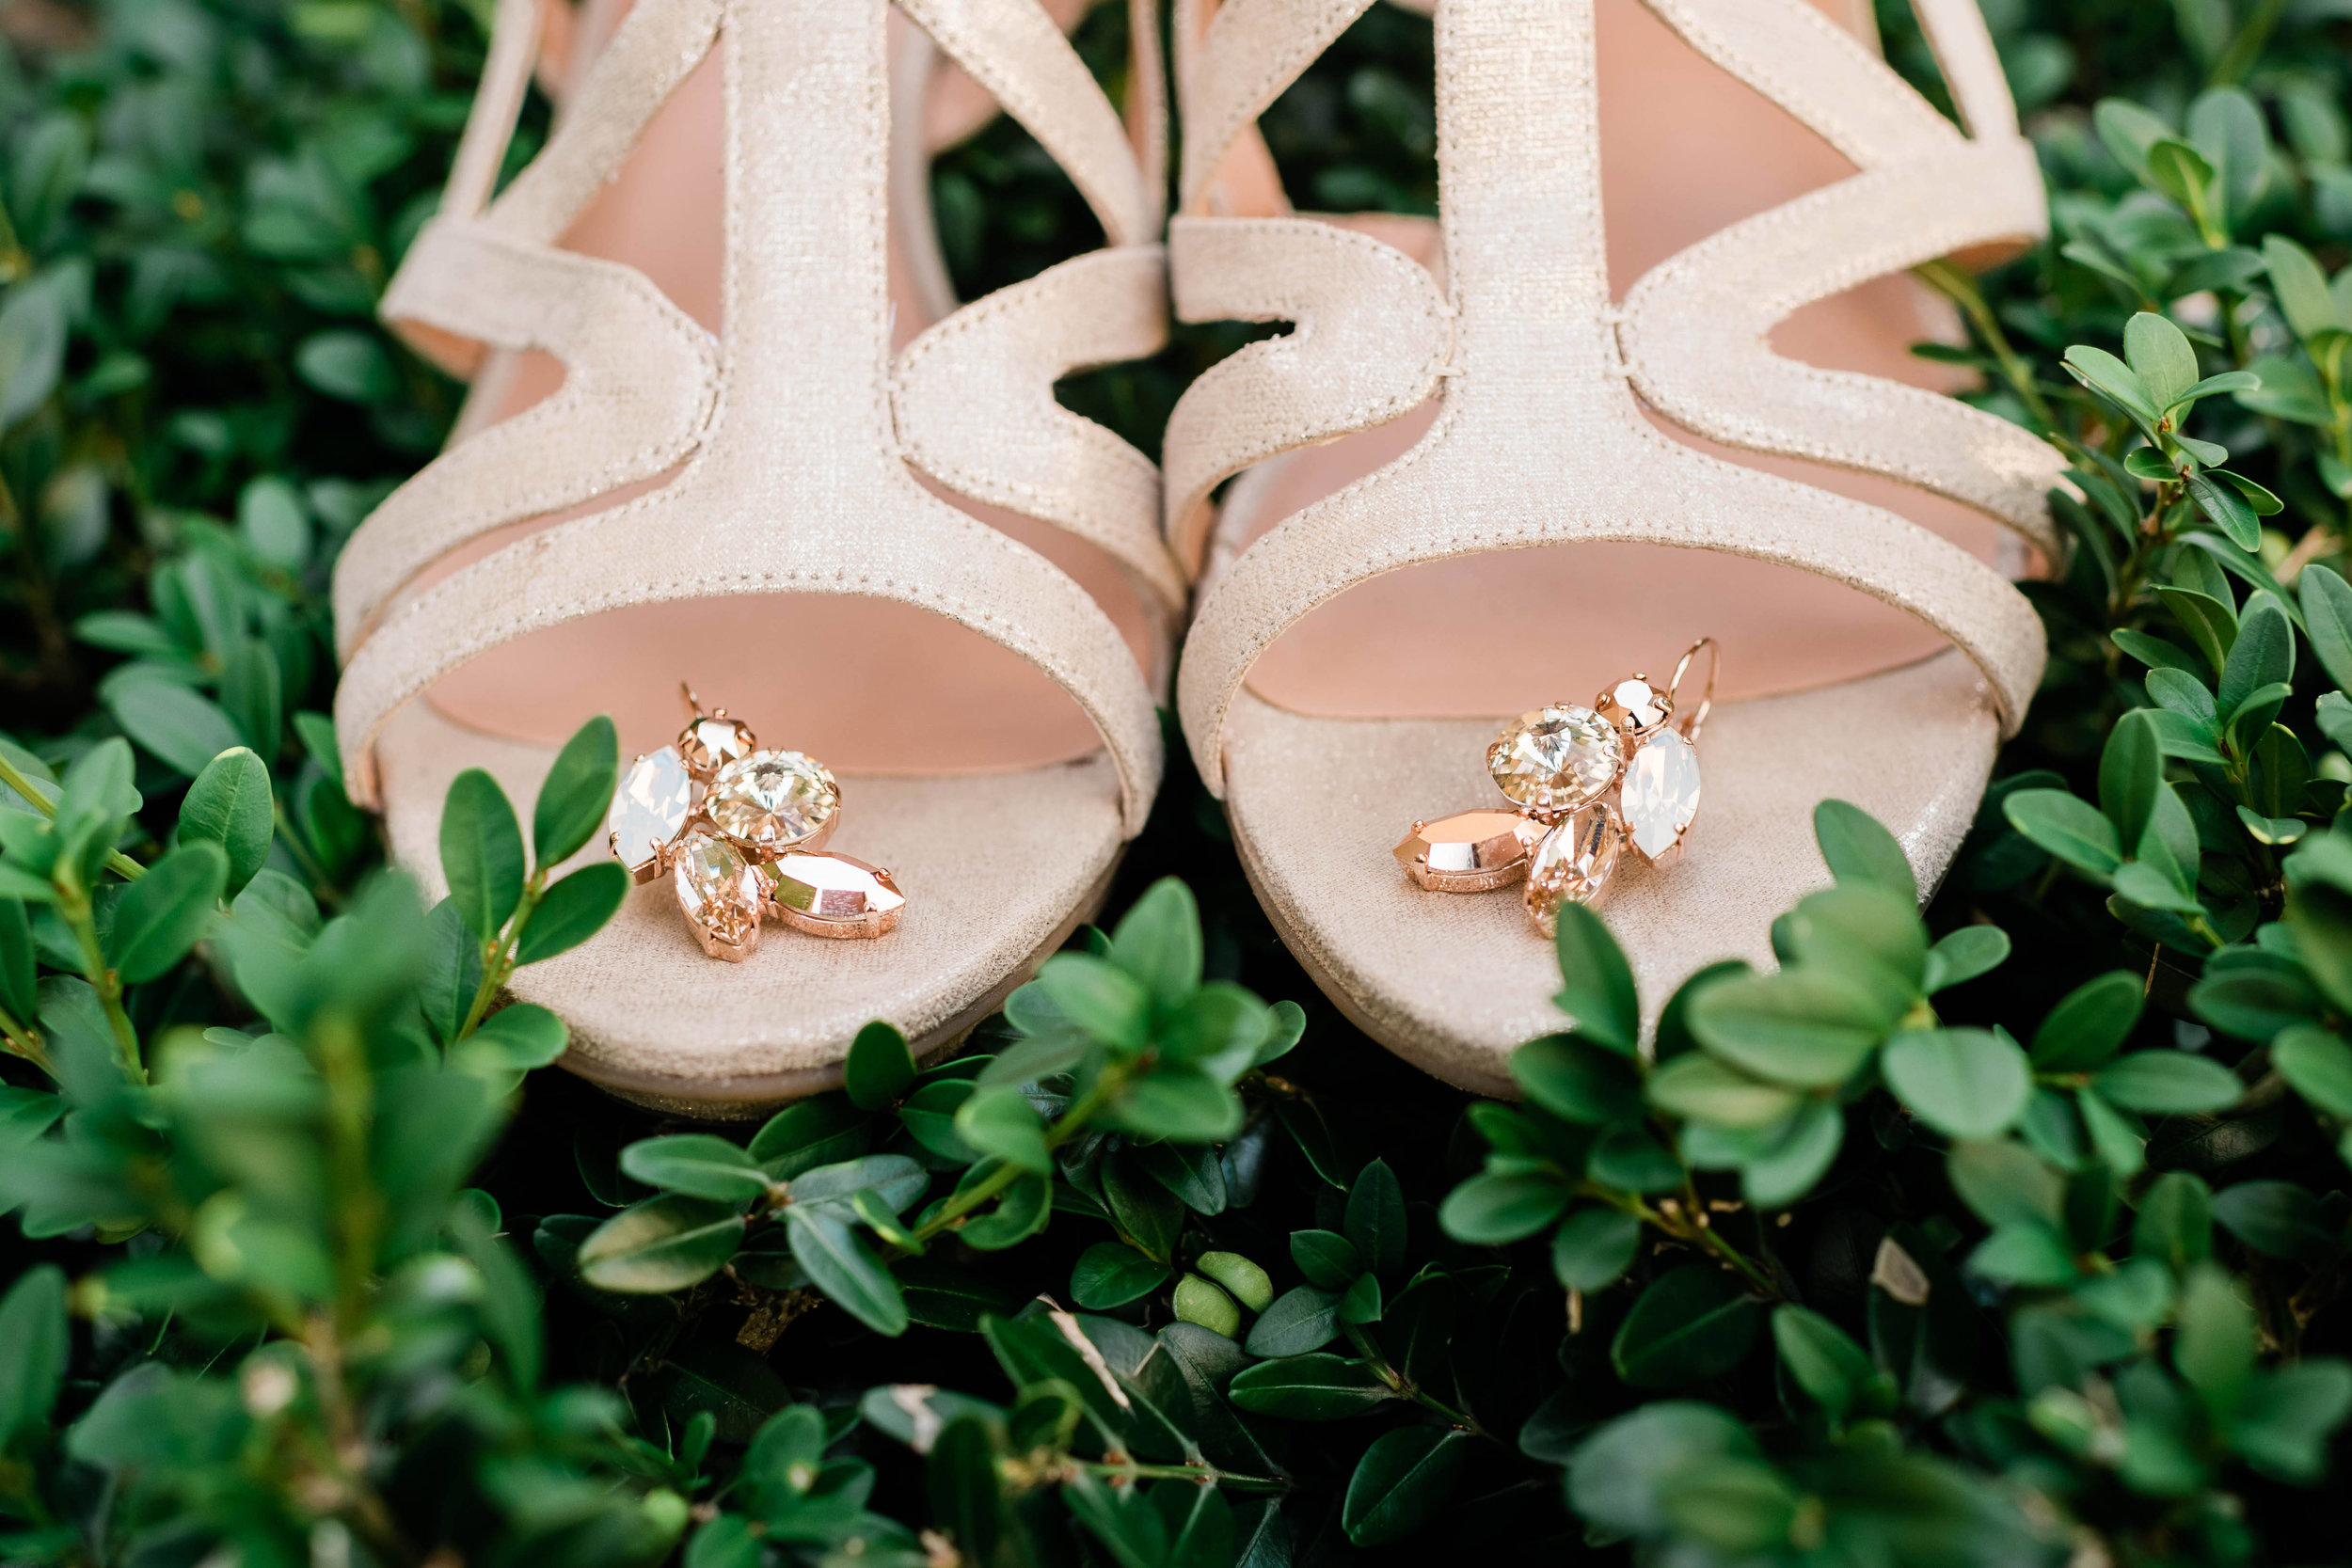 Bride's earrings on her shoes